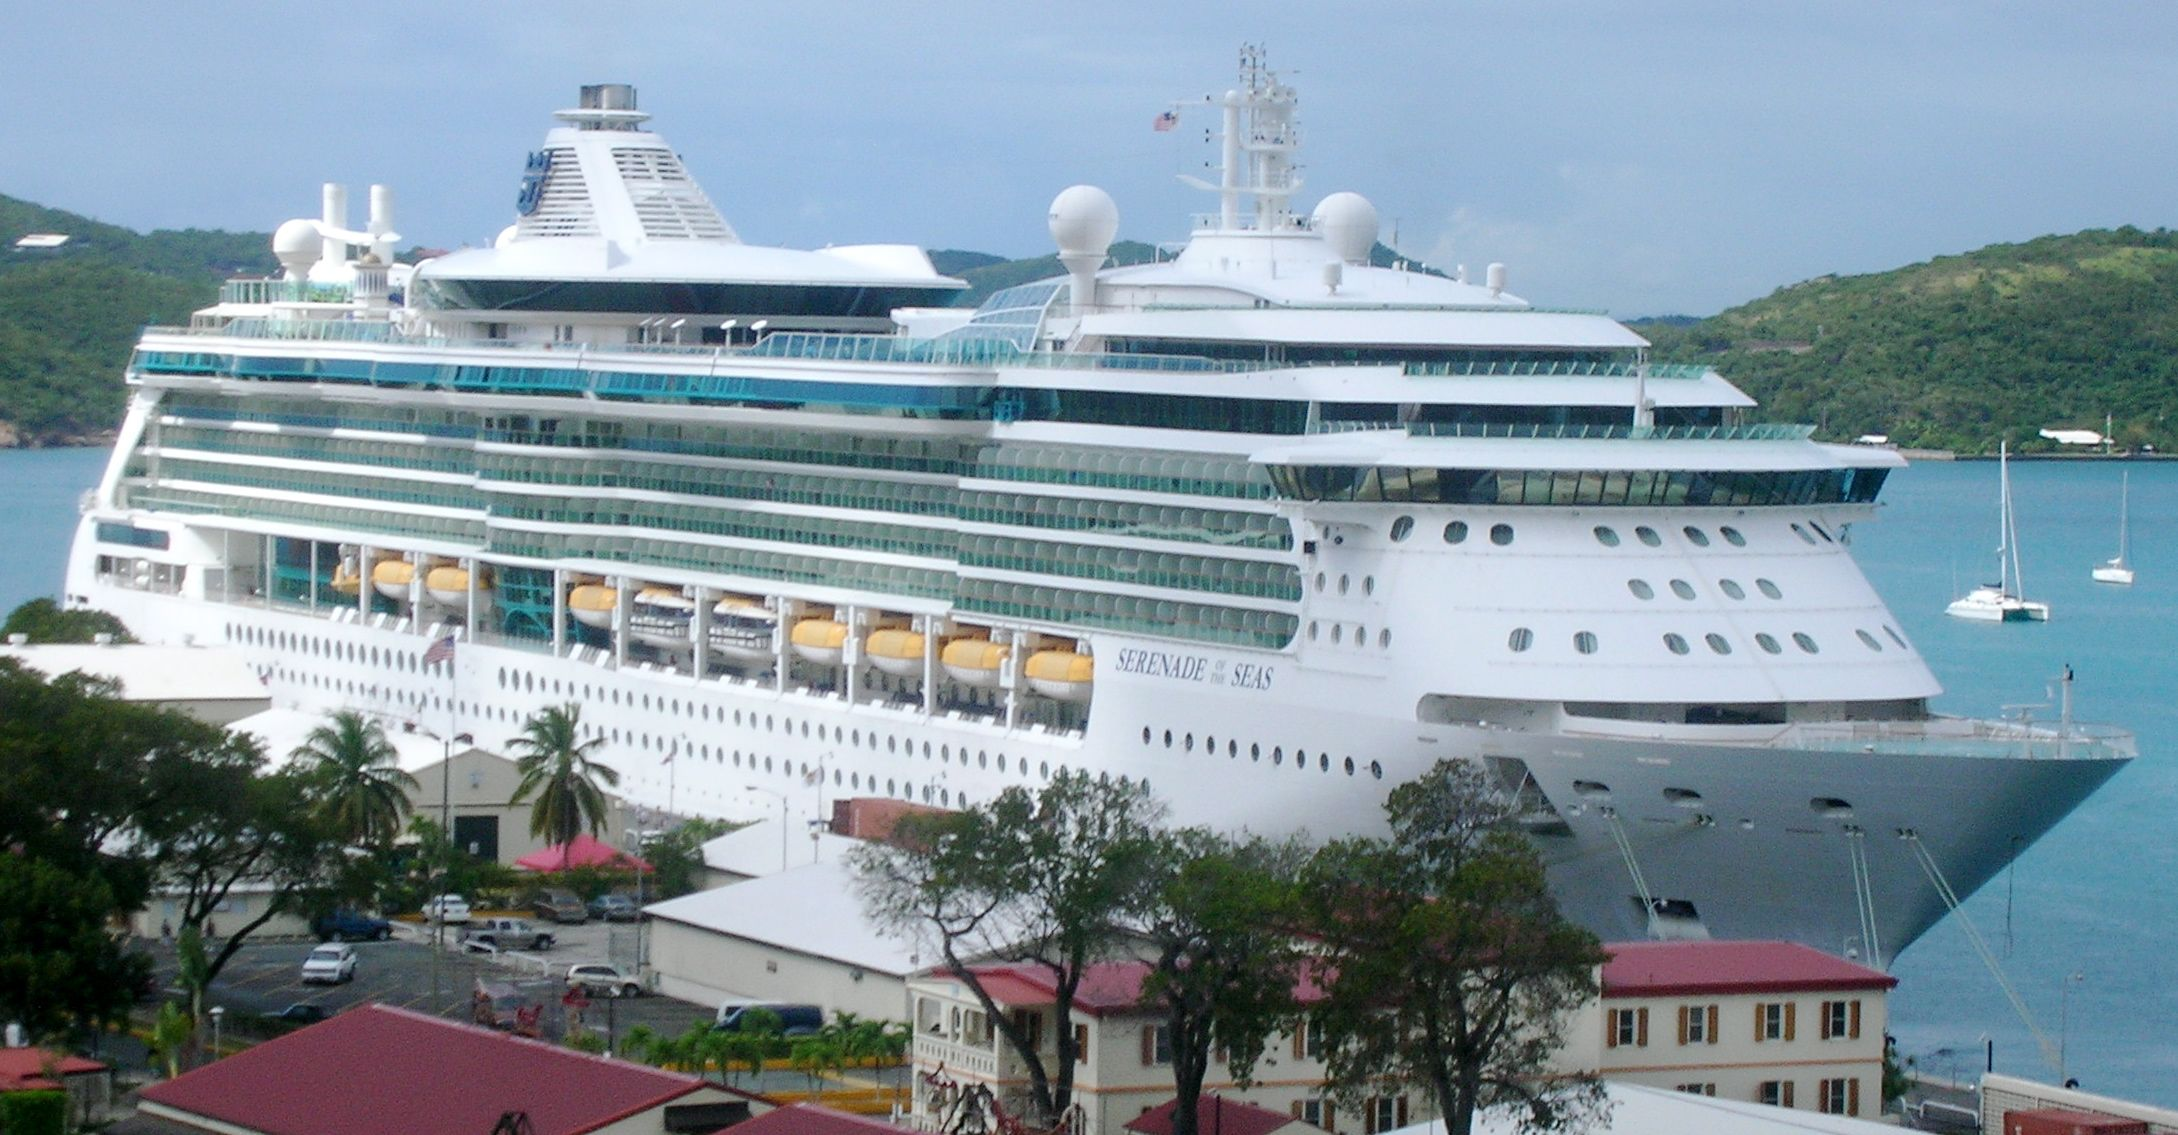 Royal Caribbean Internationalu0027s cruise vessel Serenade of